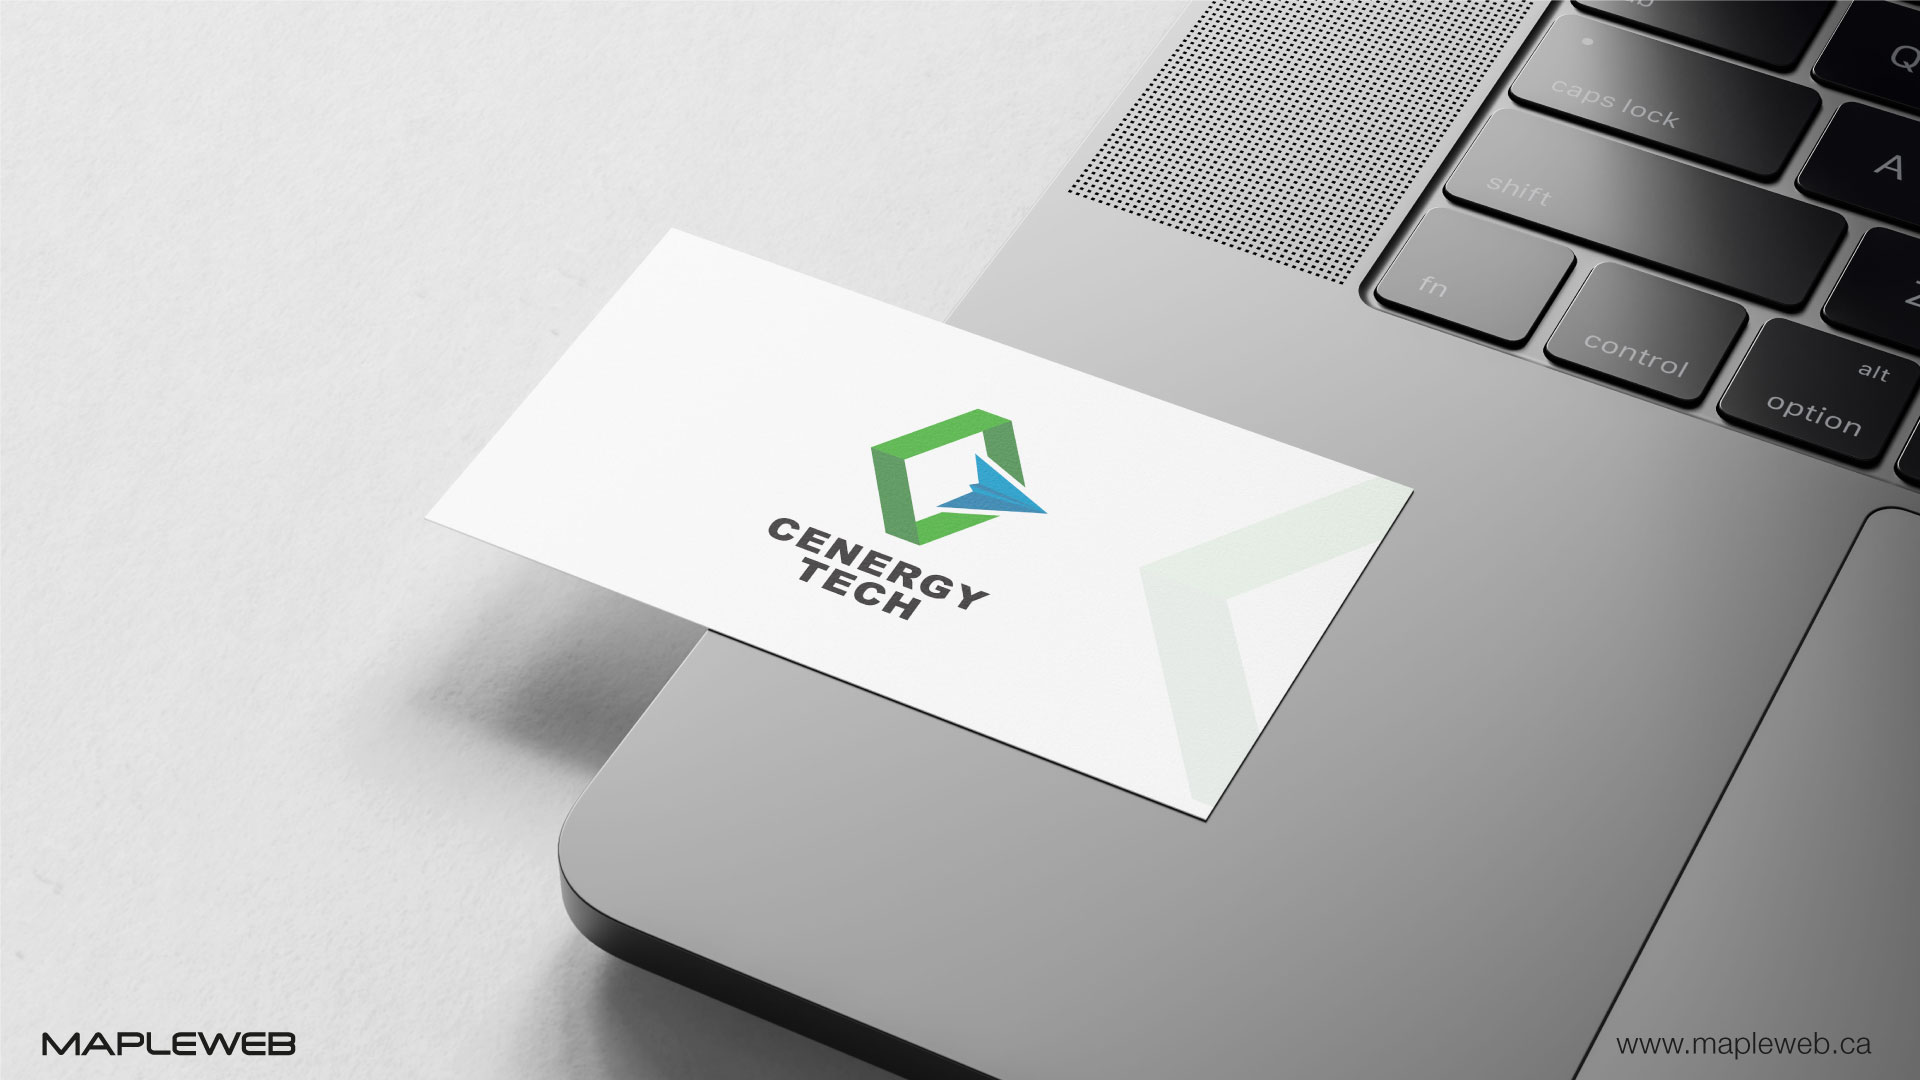 cenergy-tech-brand-logo-design-by-mapleweb-vancouver-canada-white-business-card-mock